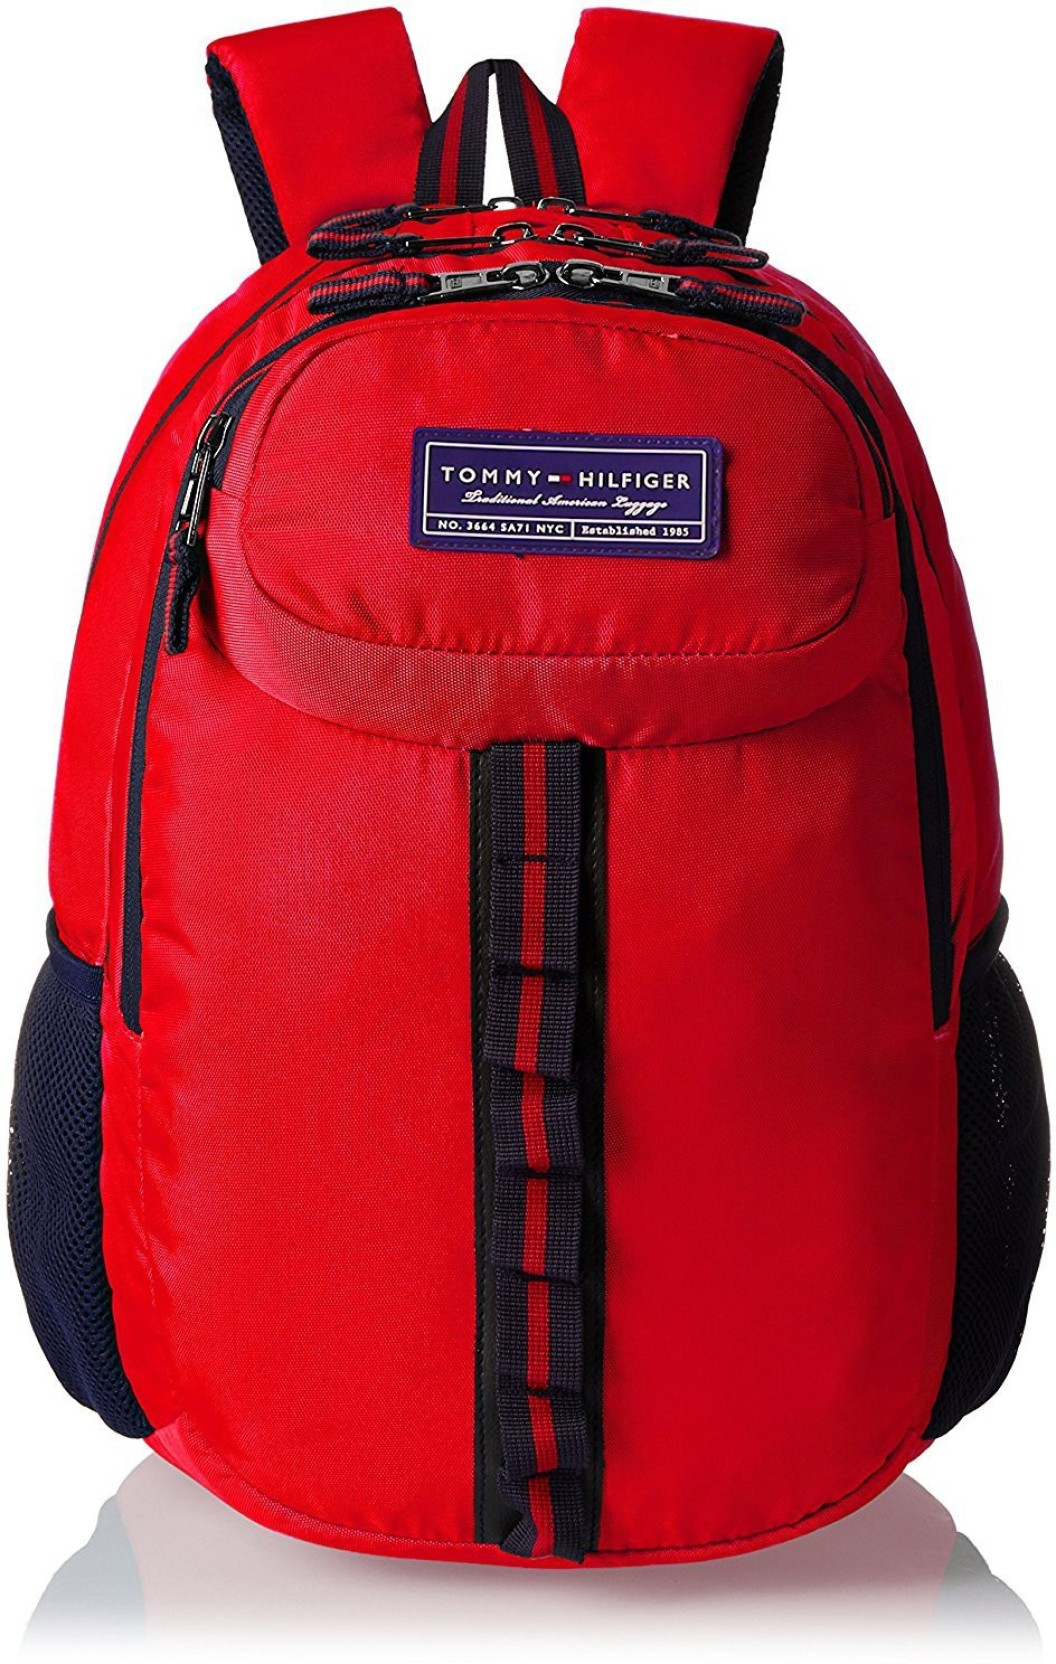 3ea51ac7 Tommy Hilfiger Travel Bags India | Building Materials Bargain Center